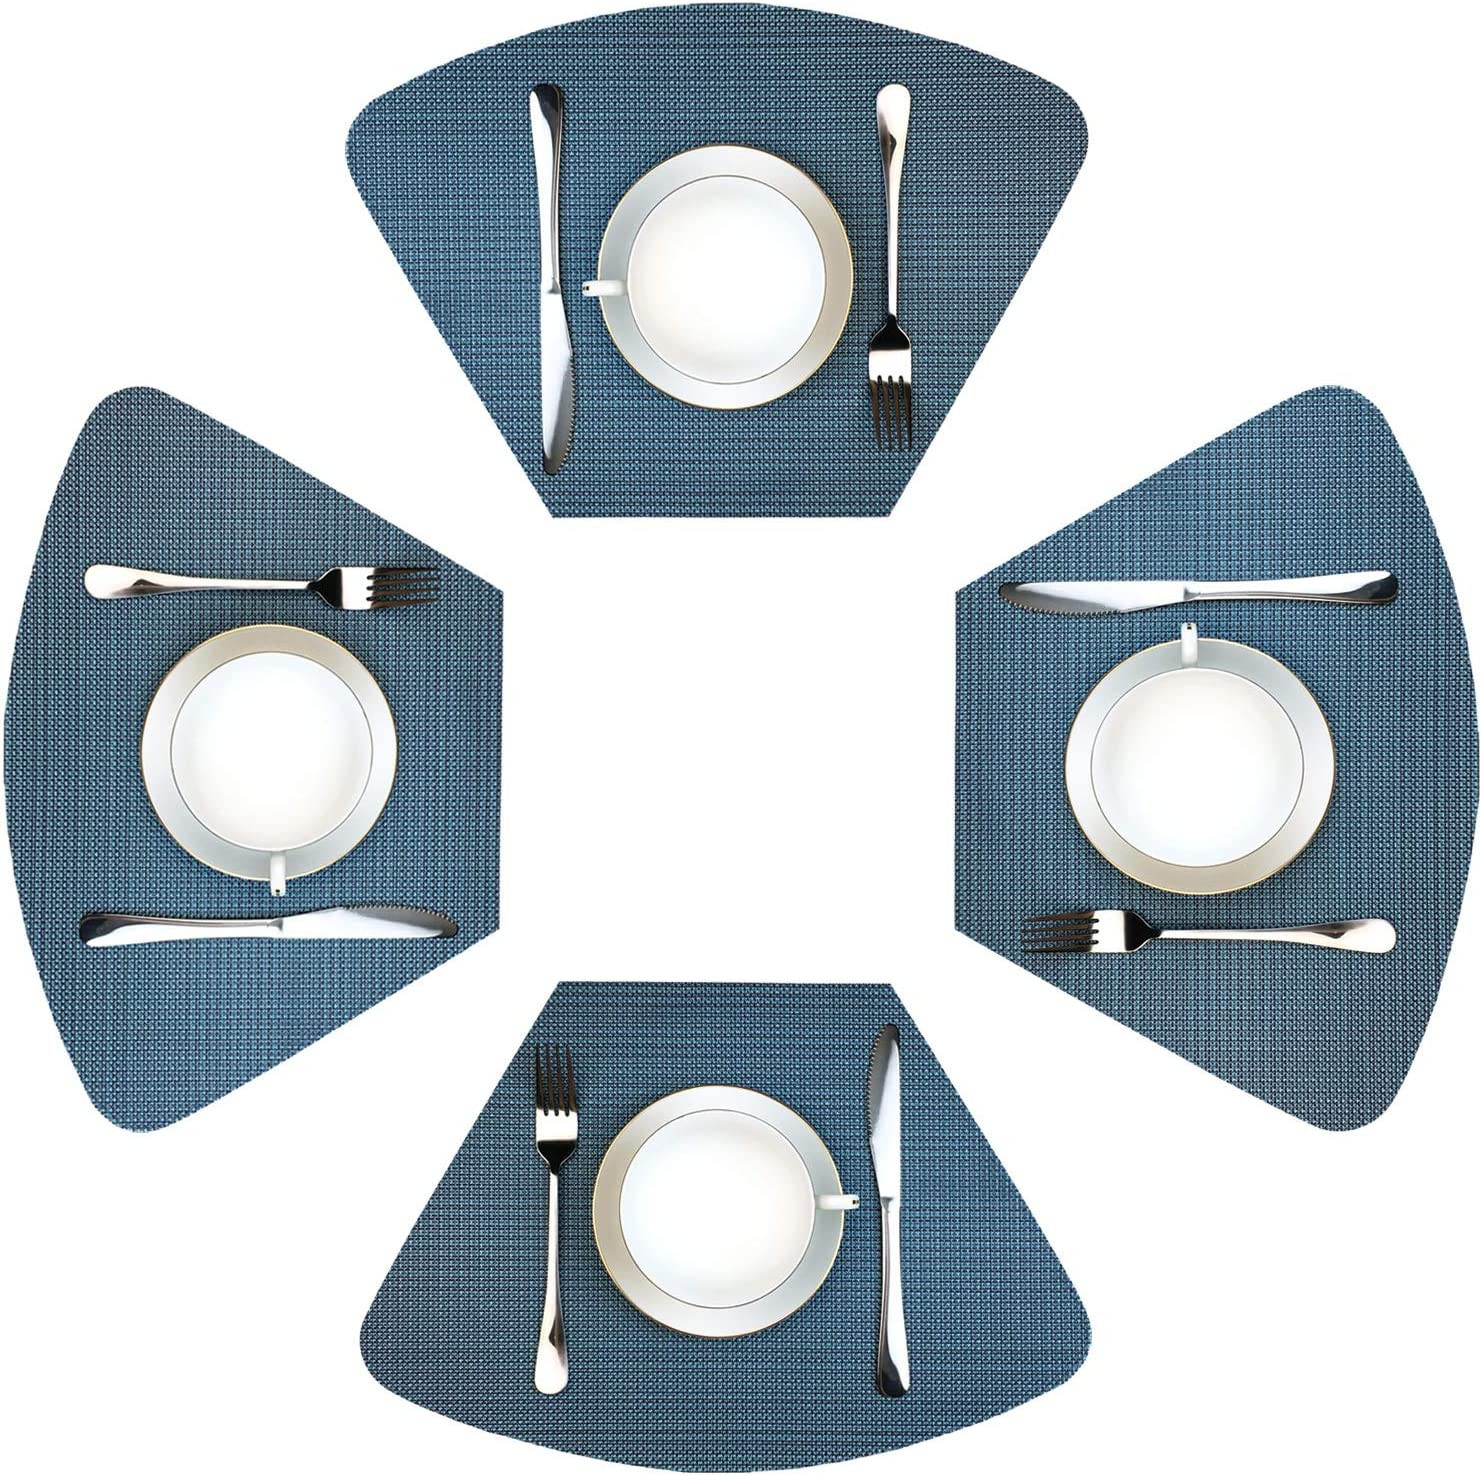 WAZAIGUR Wedge Placemats for Round Table Set of 9 Woven Vinyl Washable  Placemat for Dining Table Heat Resistant Durablity Table Mats,Blue